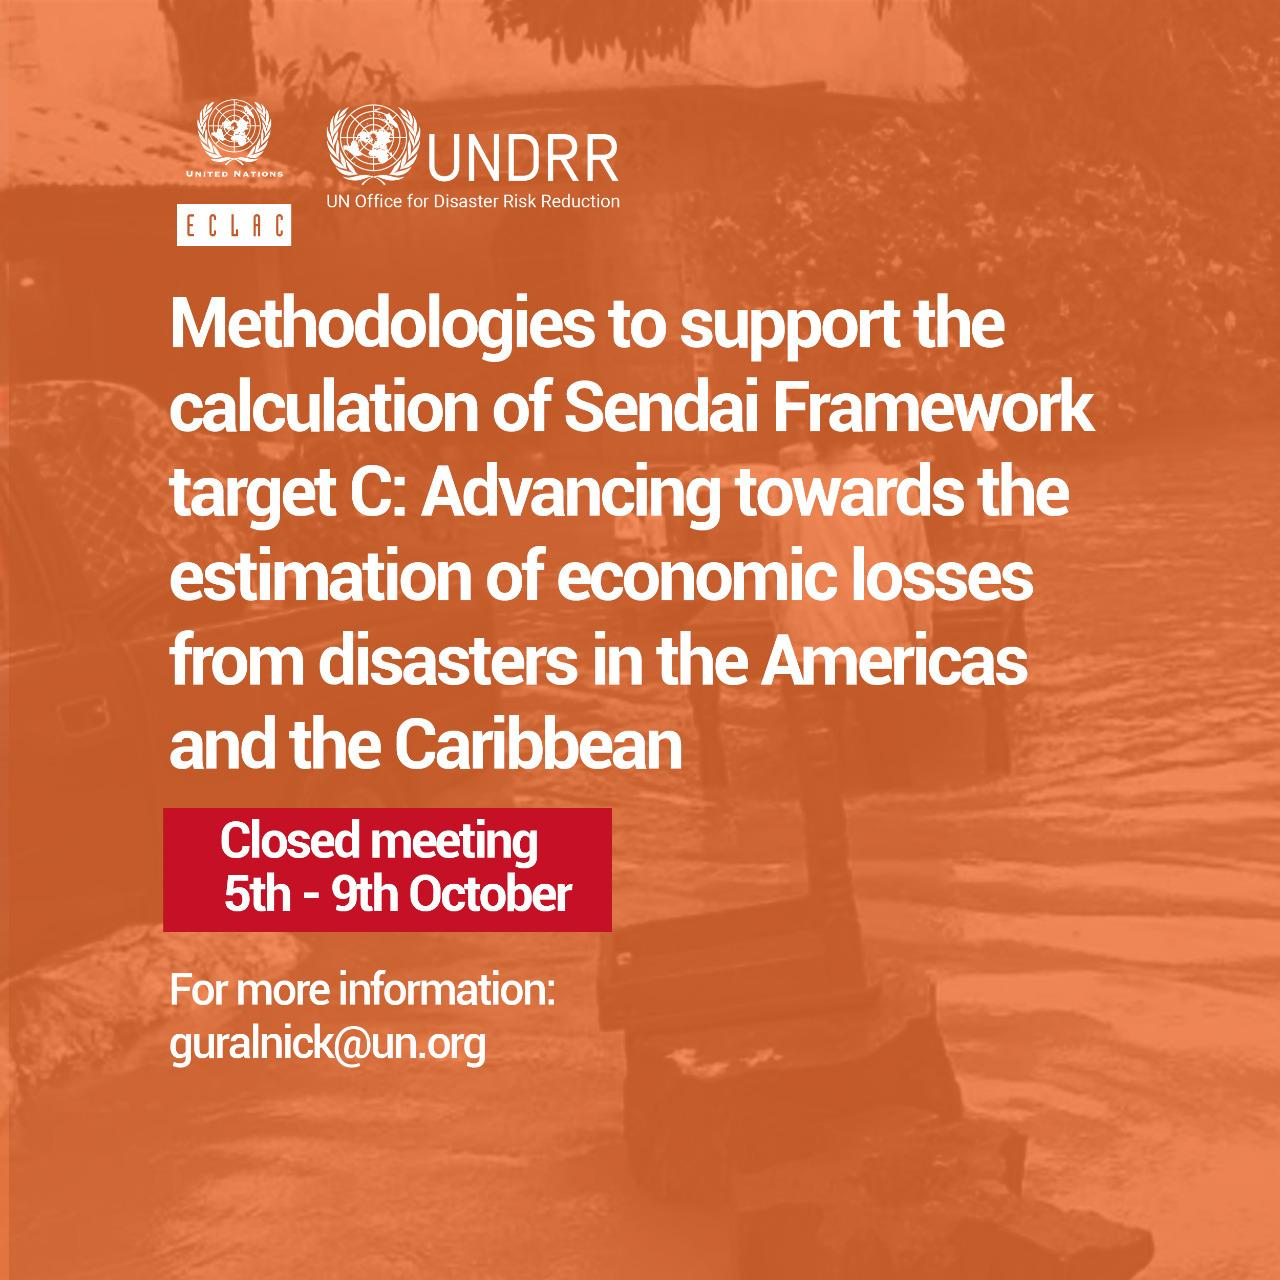 Methodologies to support the calculation of Sendai Framework target C